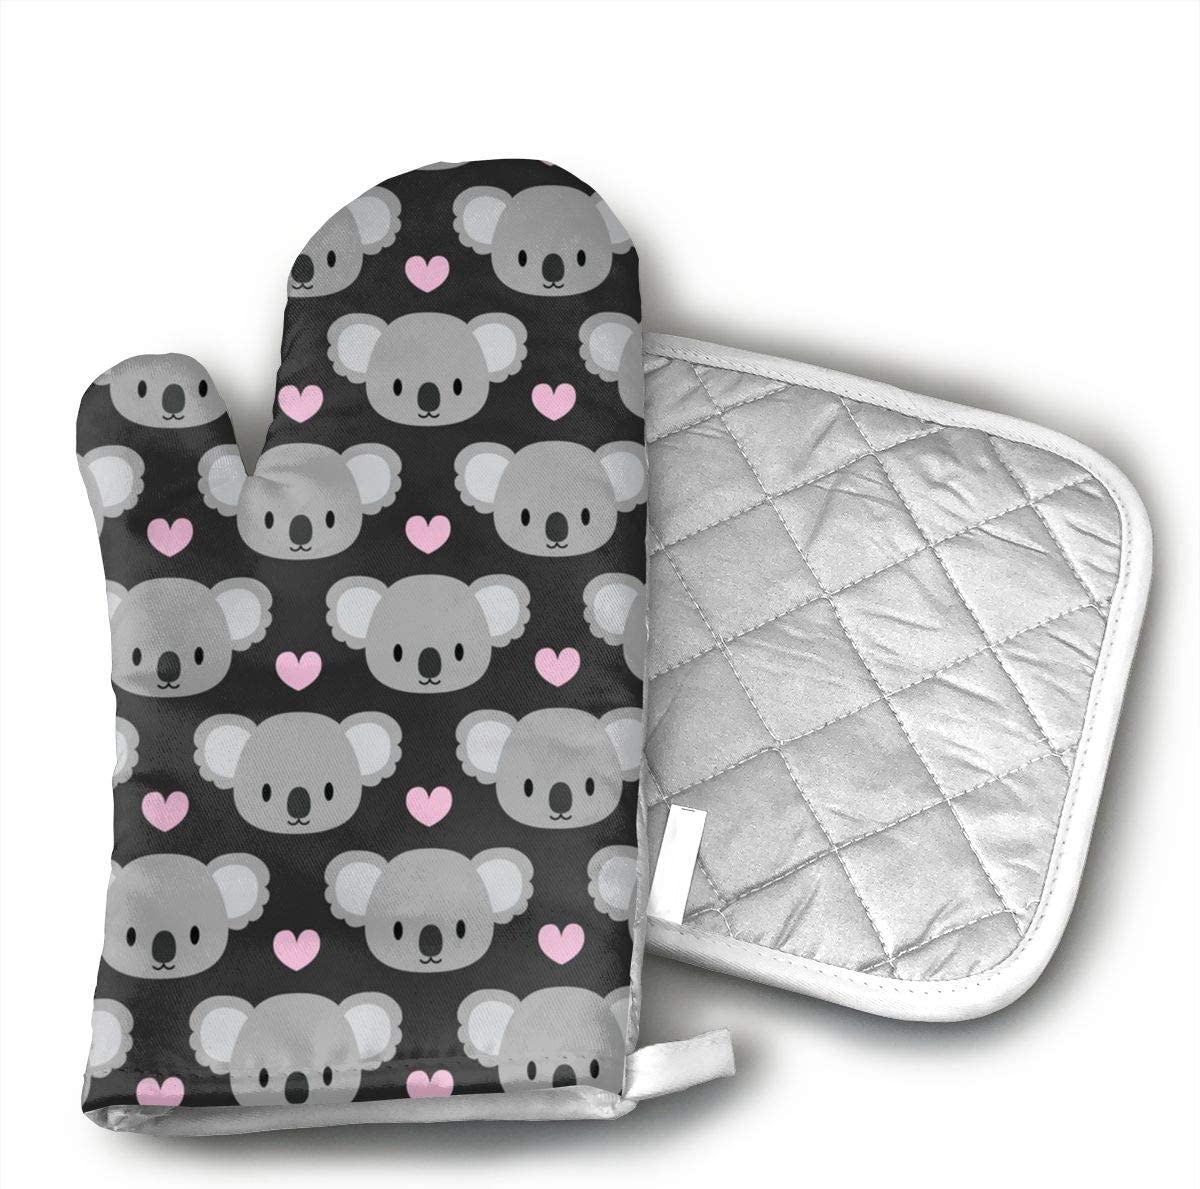 ujd Cute Koalas And Pink Hearts Neoprene Oven Mitts and Potholder Set-Heat Resistant Oven Gloves to Protect Hands and Surfaces with Non-Slip Grip, Hanging Loop-Ideal for Handling Hot Cookware Items